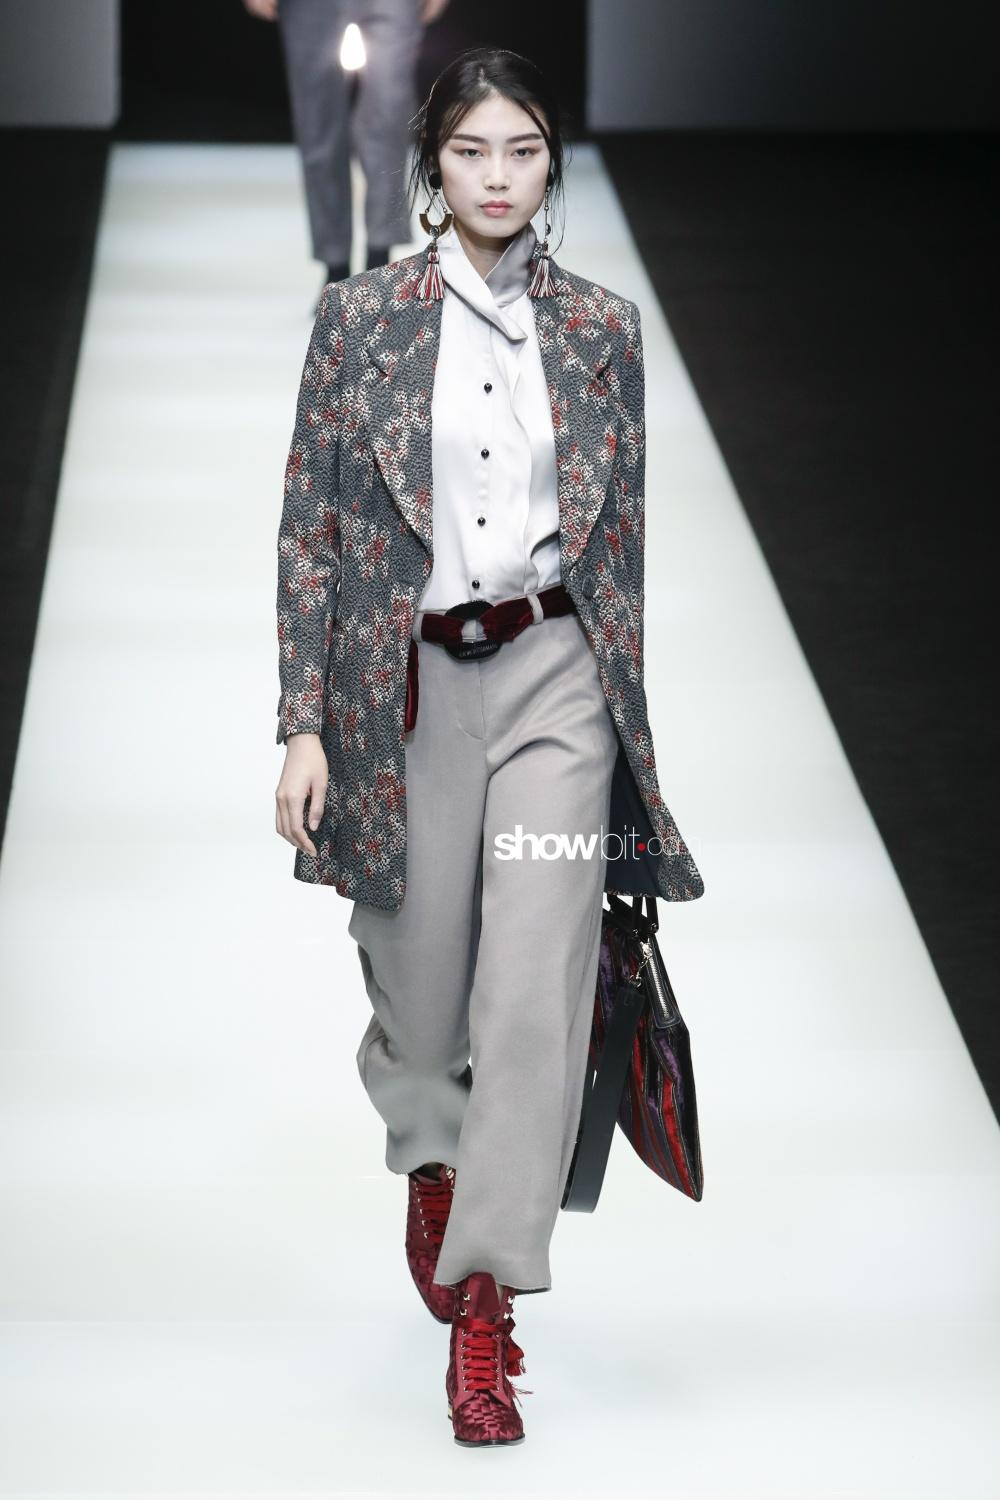 Giorgio Armani Woman Fall Winter 2018 Milan